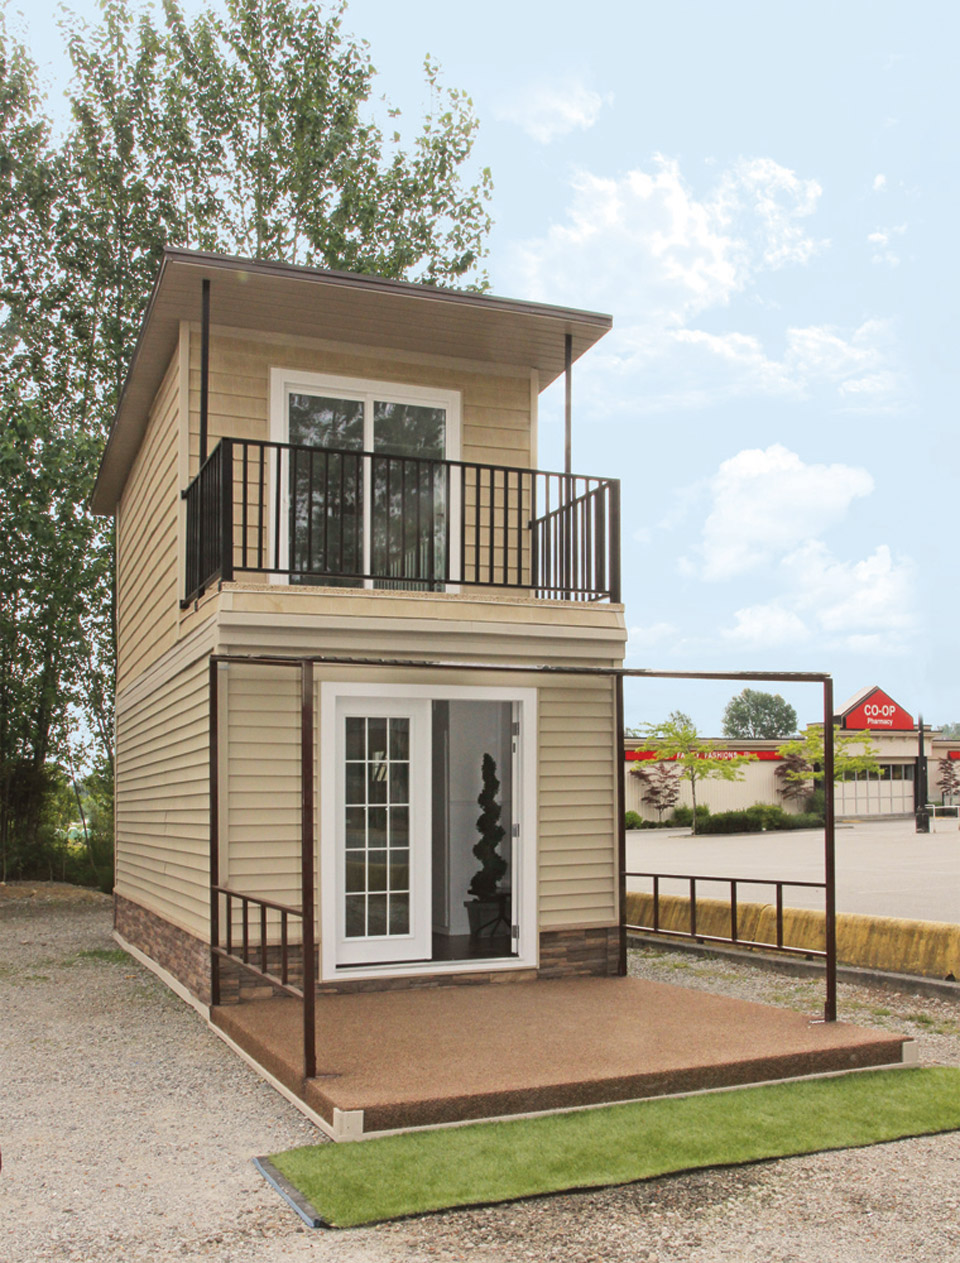 The eagle 1 a 350 sq ft 2 story steel framed micro home for Small two story cabin plans